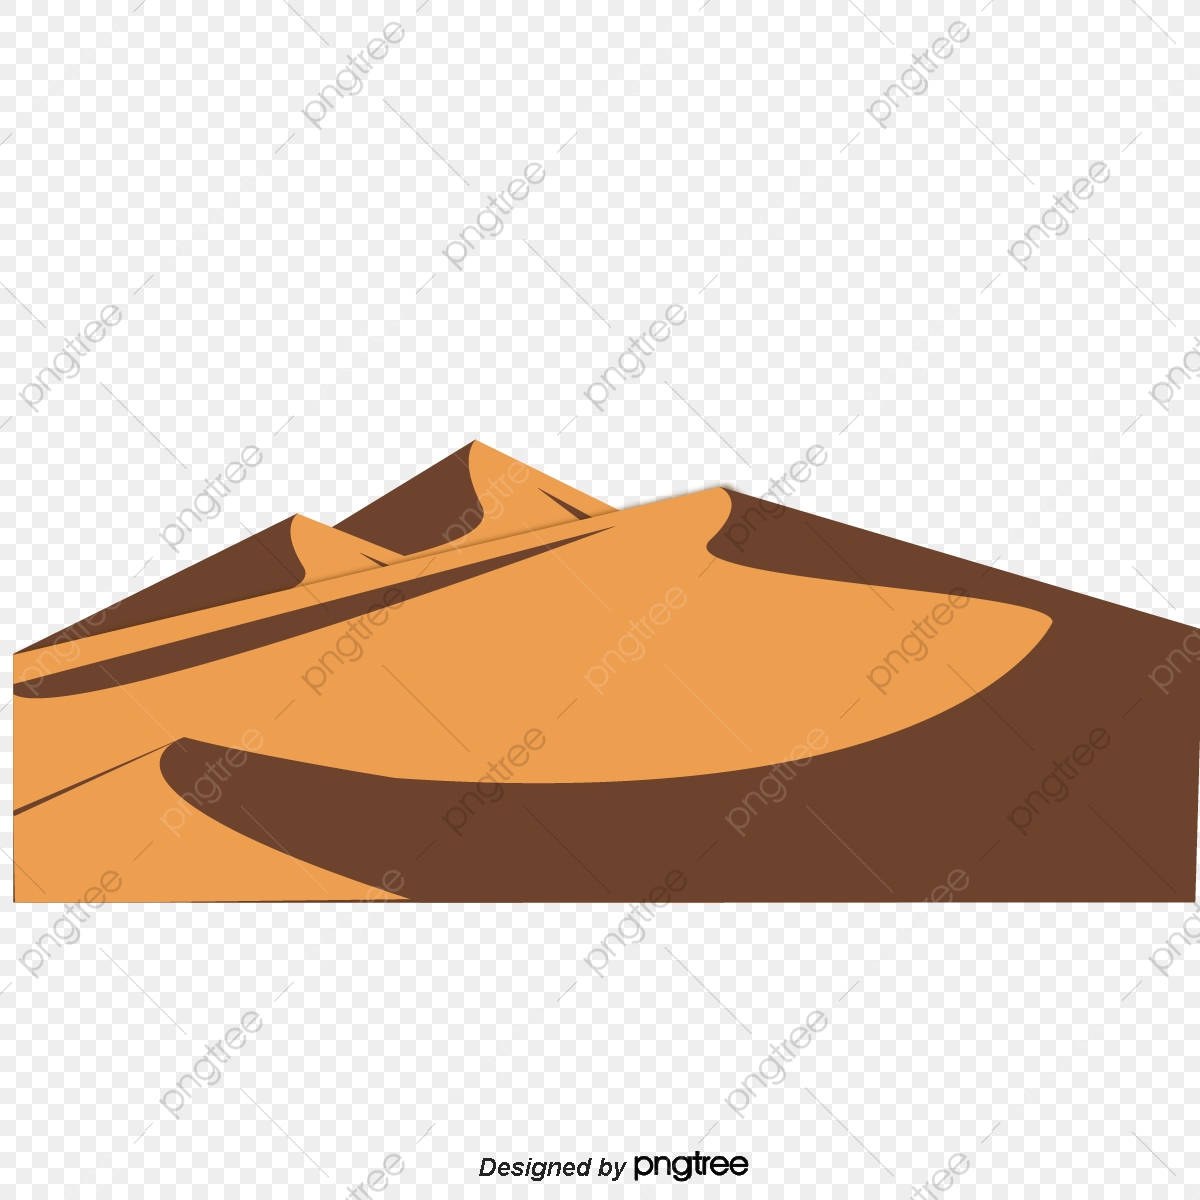 Beautiful Desert Image, Desert Clipart, Vast Desert PNG Transparent